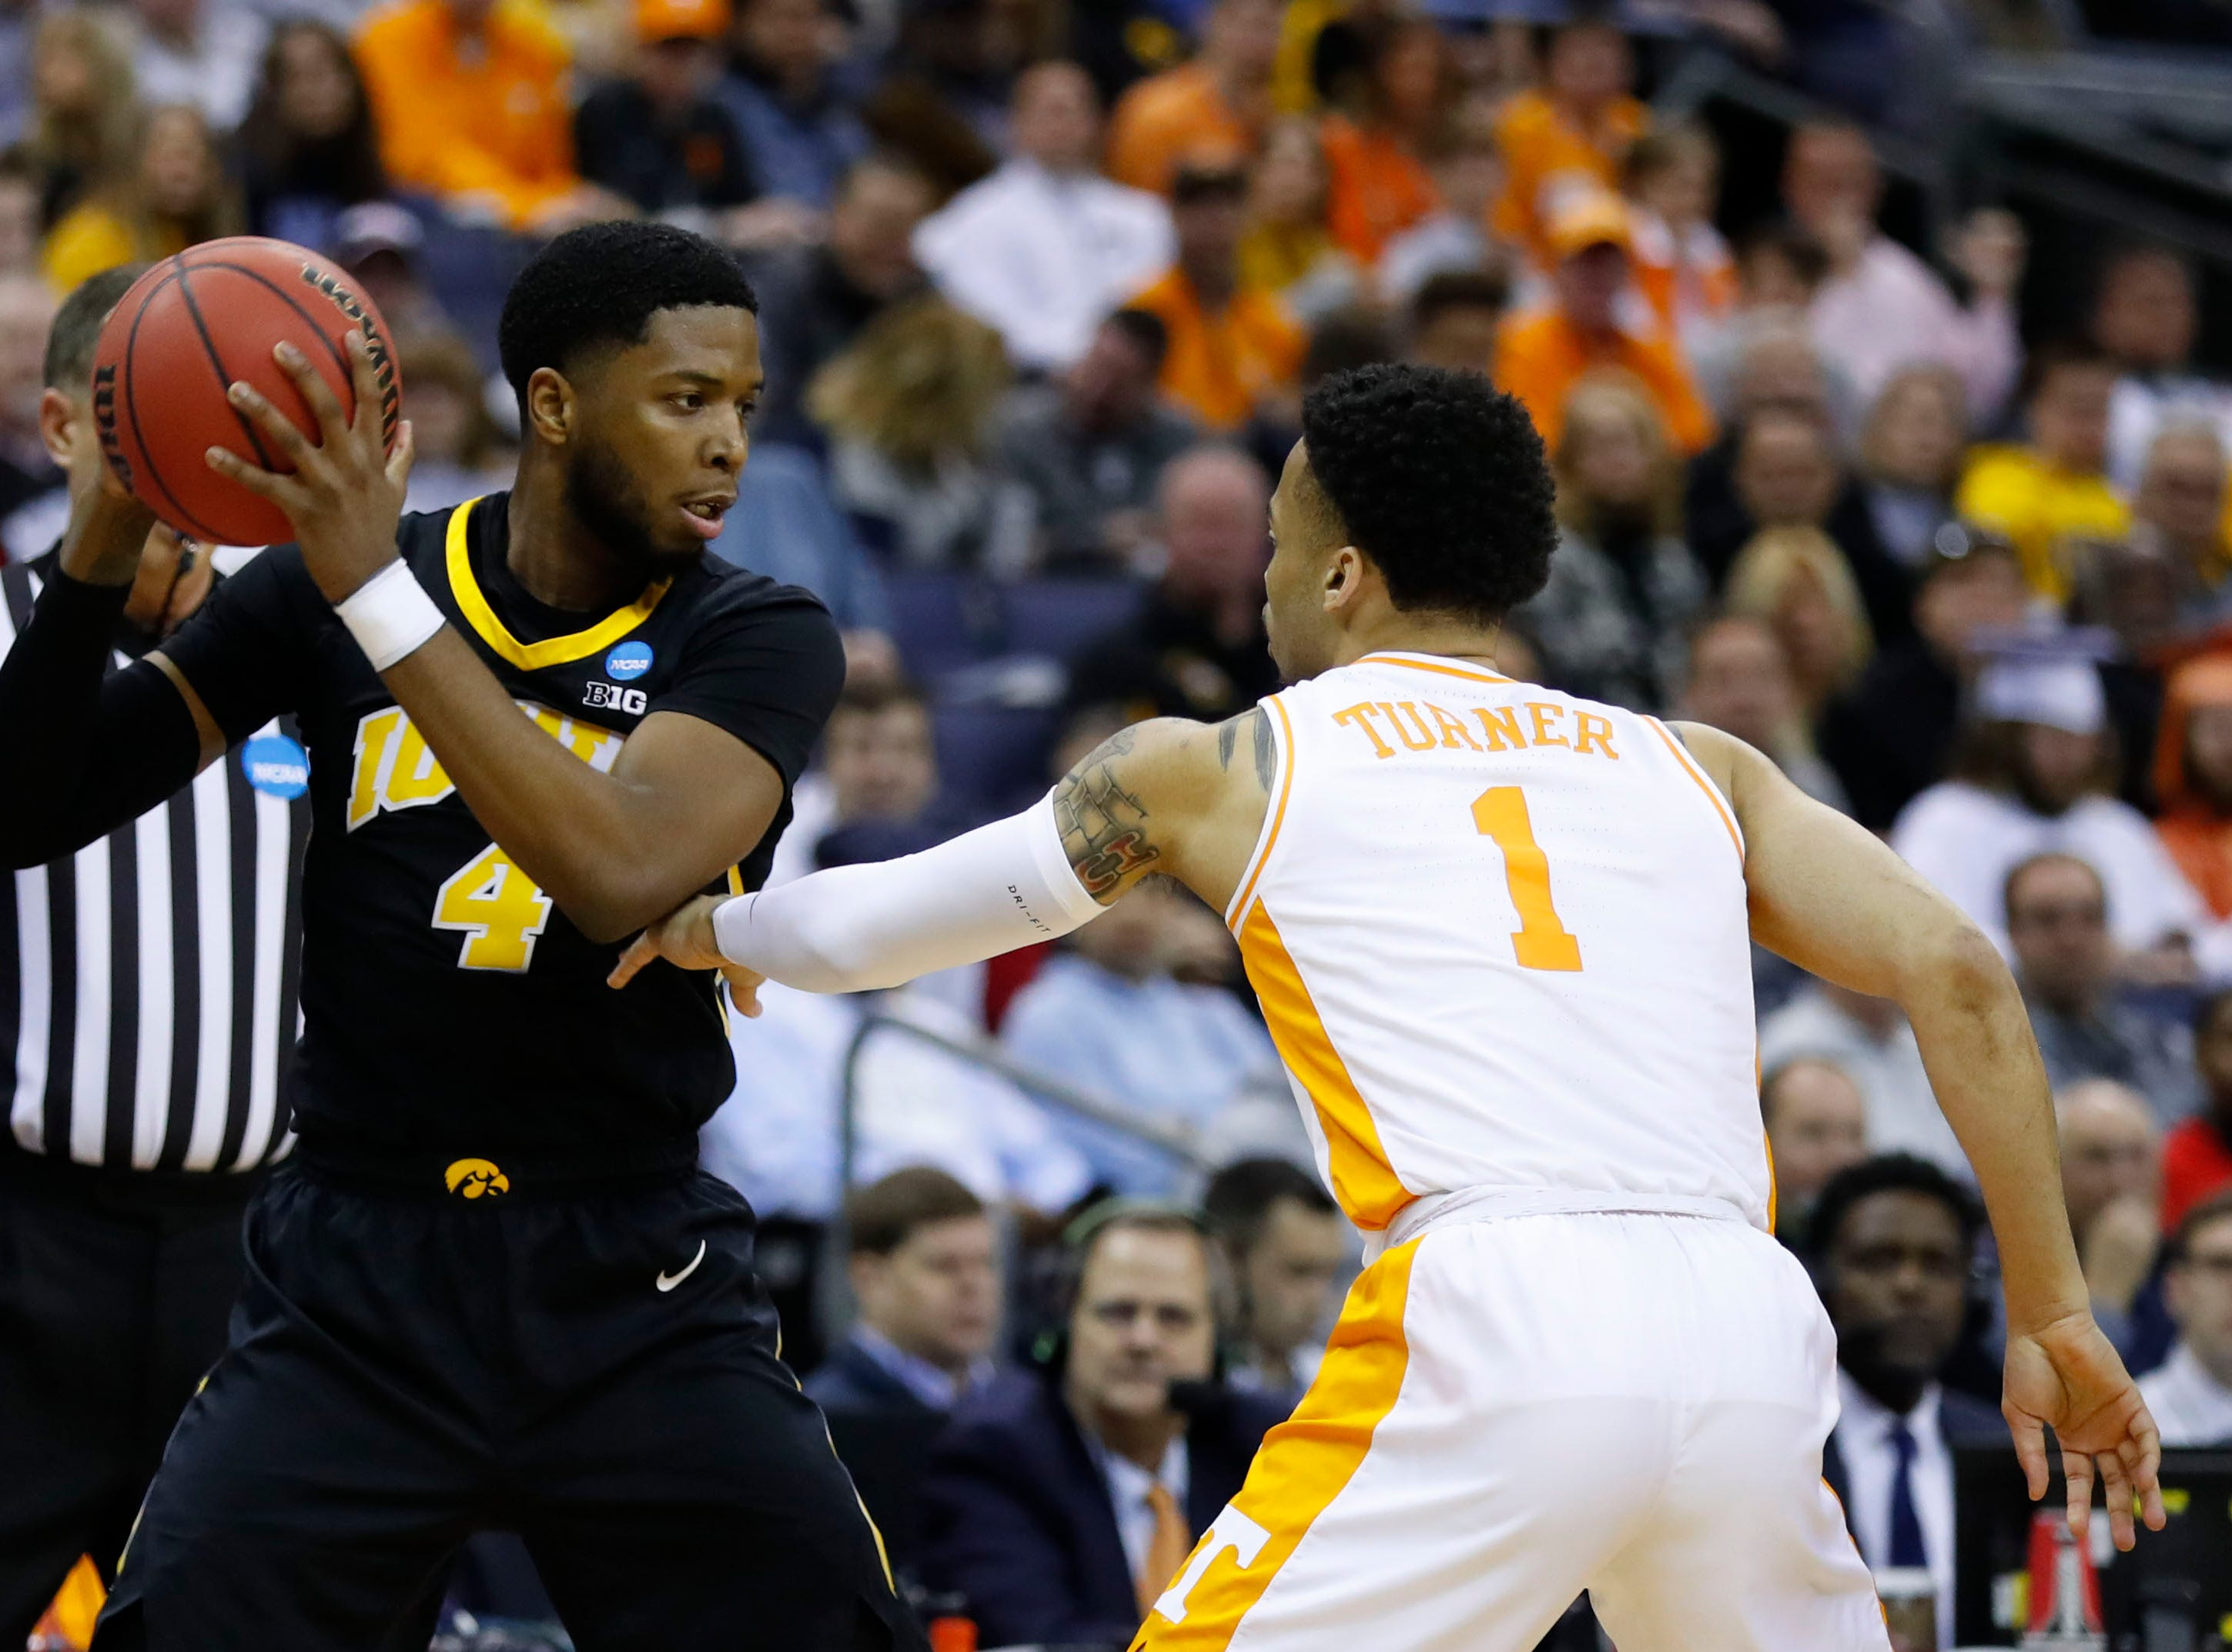 Iowa Hawkeyes guard Isaiah Moss (4) looks to move the ball defended by Tennessee Volunteers guard Lamonte Turner (1) in the first half in the second round of the 2019 NCAA Tournament at Nationwide Arena.